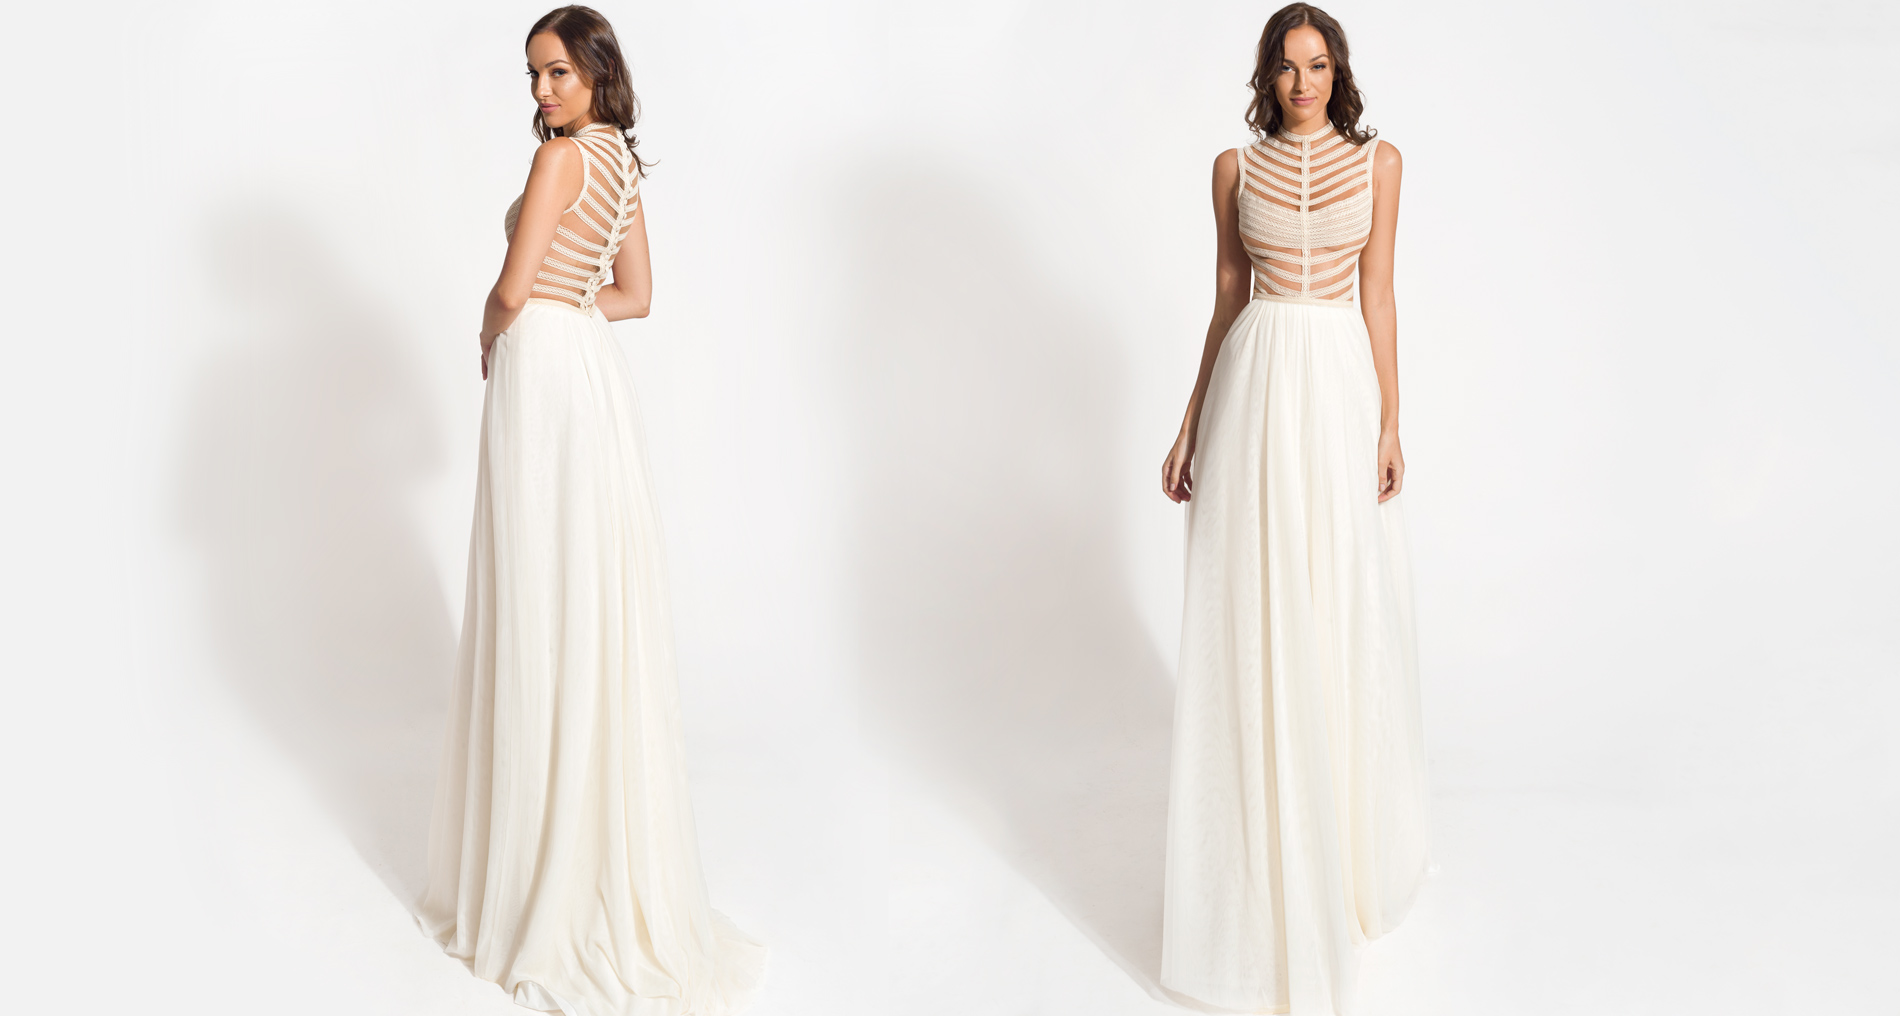 Aerea wedding dress from  Hellenic Vintage Origin Collection